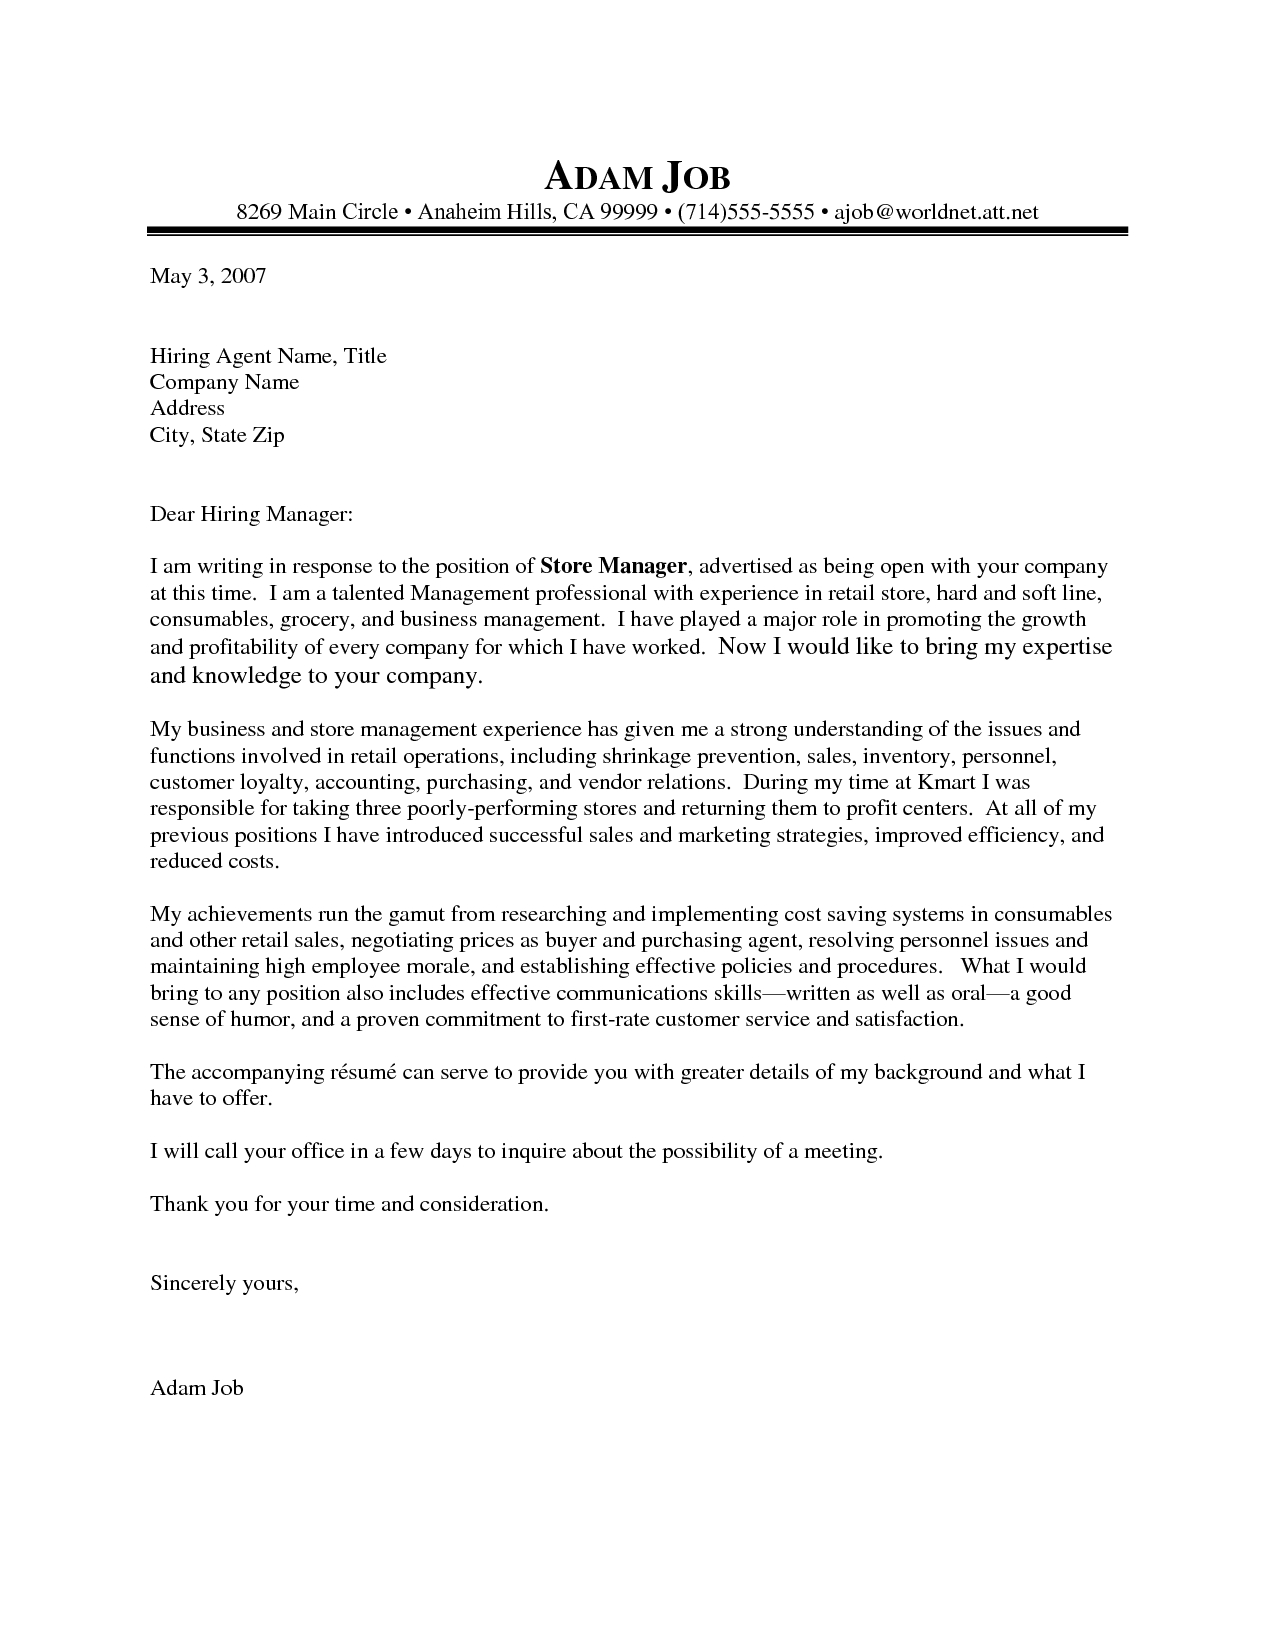 Cover Letter Template for Retail Job - Cover Letters Samples for Customer Service Cover Letter Samples and